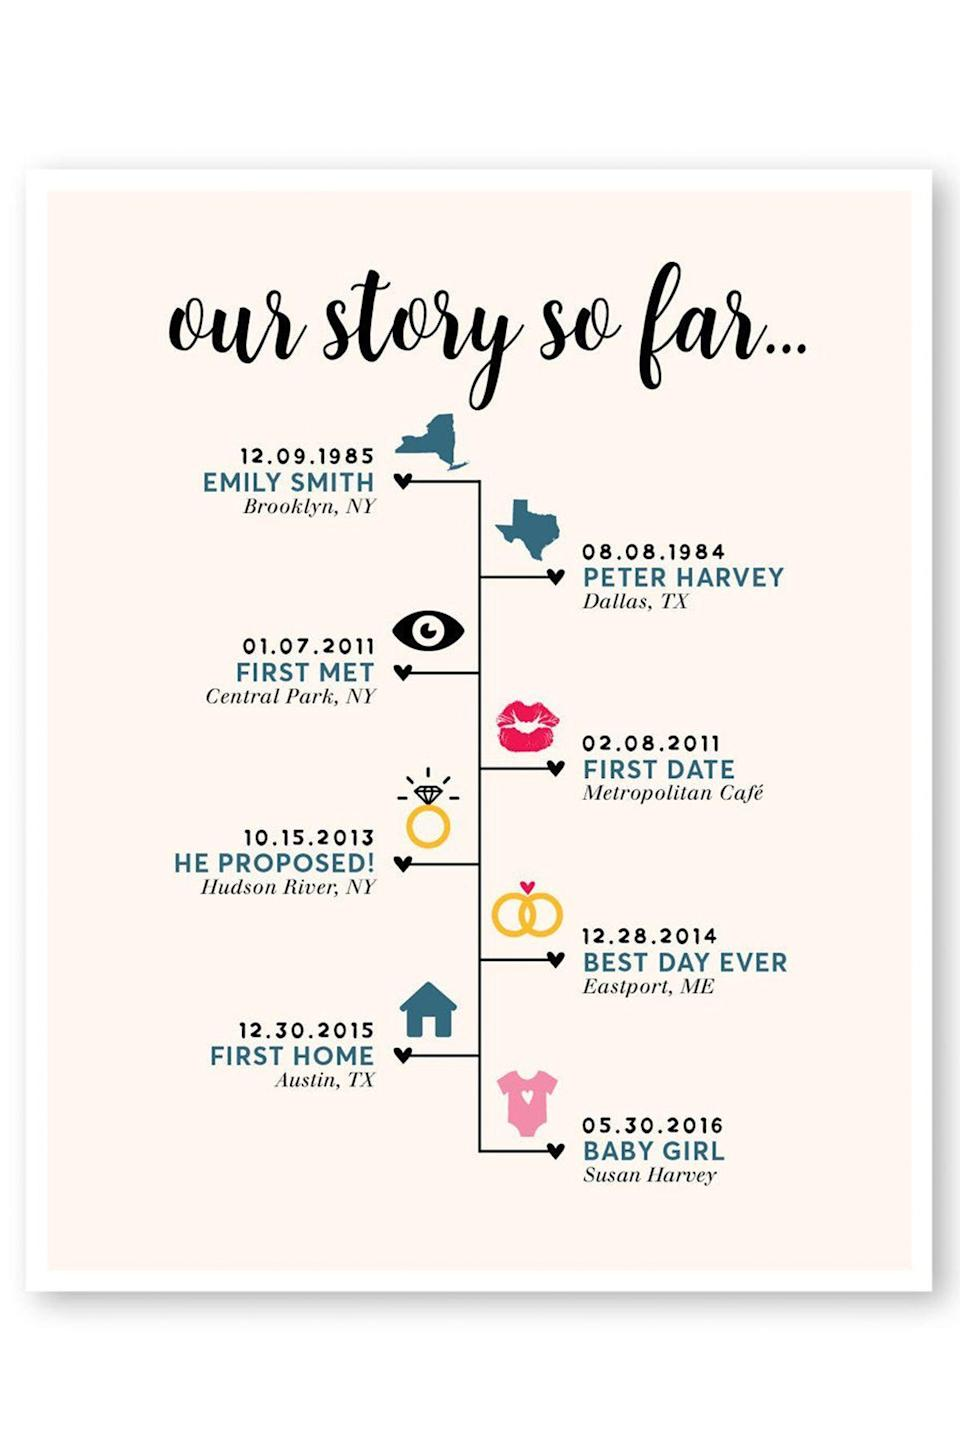 """<p><strong>PuffPaperCo</strong></p><p>etsy.com</p><p><strong>$25.00</strong></p><p><a href=""""https://go.redirectingat.com?id=74968X1596630&url=https%3A%2F%2Fwww.etsy.com%2Flisting%2F627891197%2Four-story-so-far-timeline-2-year&sref=https%3A%2F%2Fwww.seventeen.com%2Flove%2Fdating-advice%2Fg30107520%2Fone-year-anniversary-gifts-for-him-boyfriend%2F"""" rel=""""nofollow noopener"""" target=""""_blank"""" data-ylk=""""slk:Shop Now"""" class=""""link rapid-noclick-resp"""">Shop Now</a></p><p>Celebrate all of your big moments thus far with this adorable custom poster. Yeah, your version prob won't have weddings and babies, but it can have big moments like your first kiss, first date, and prom!</p>"""